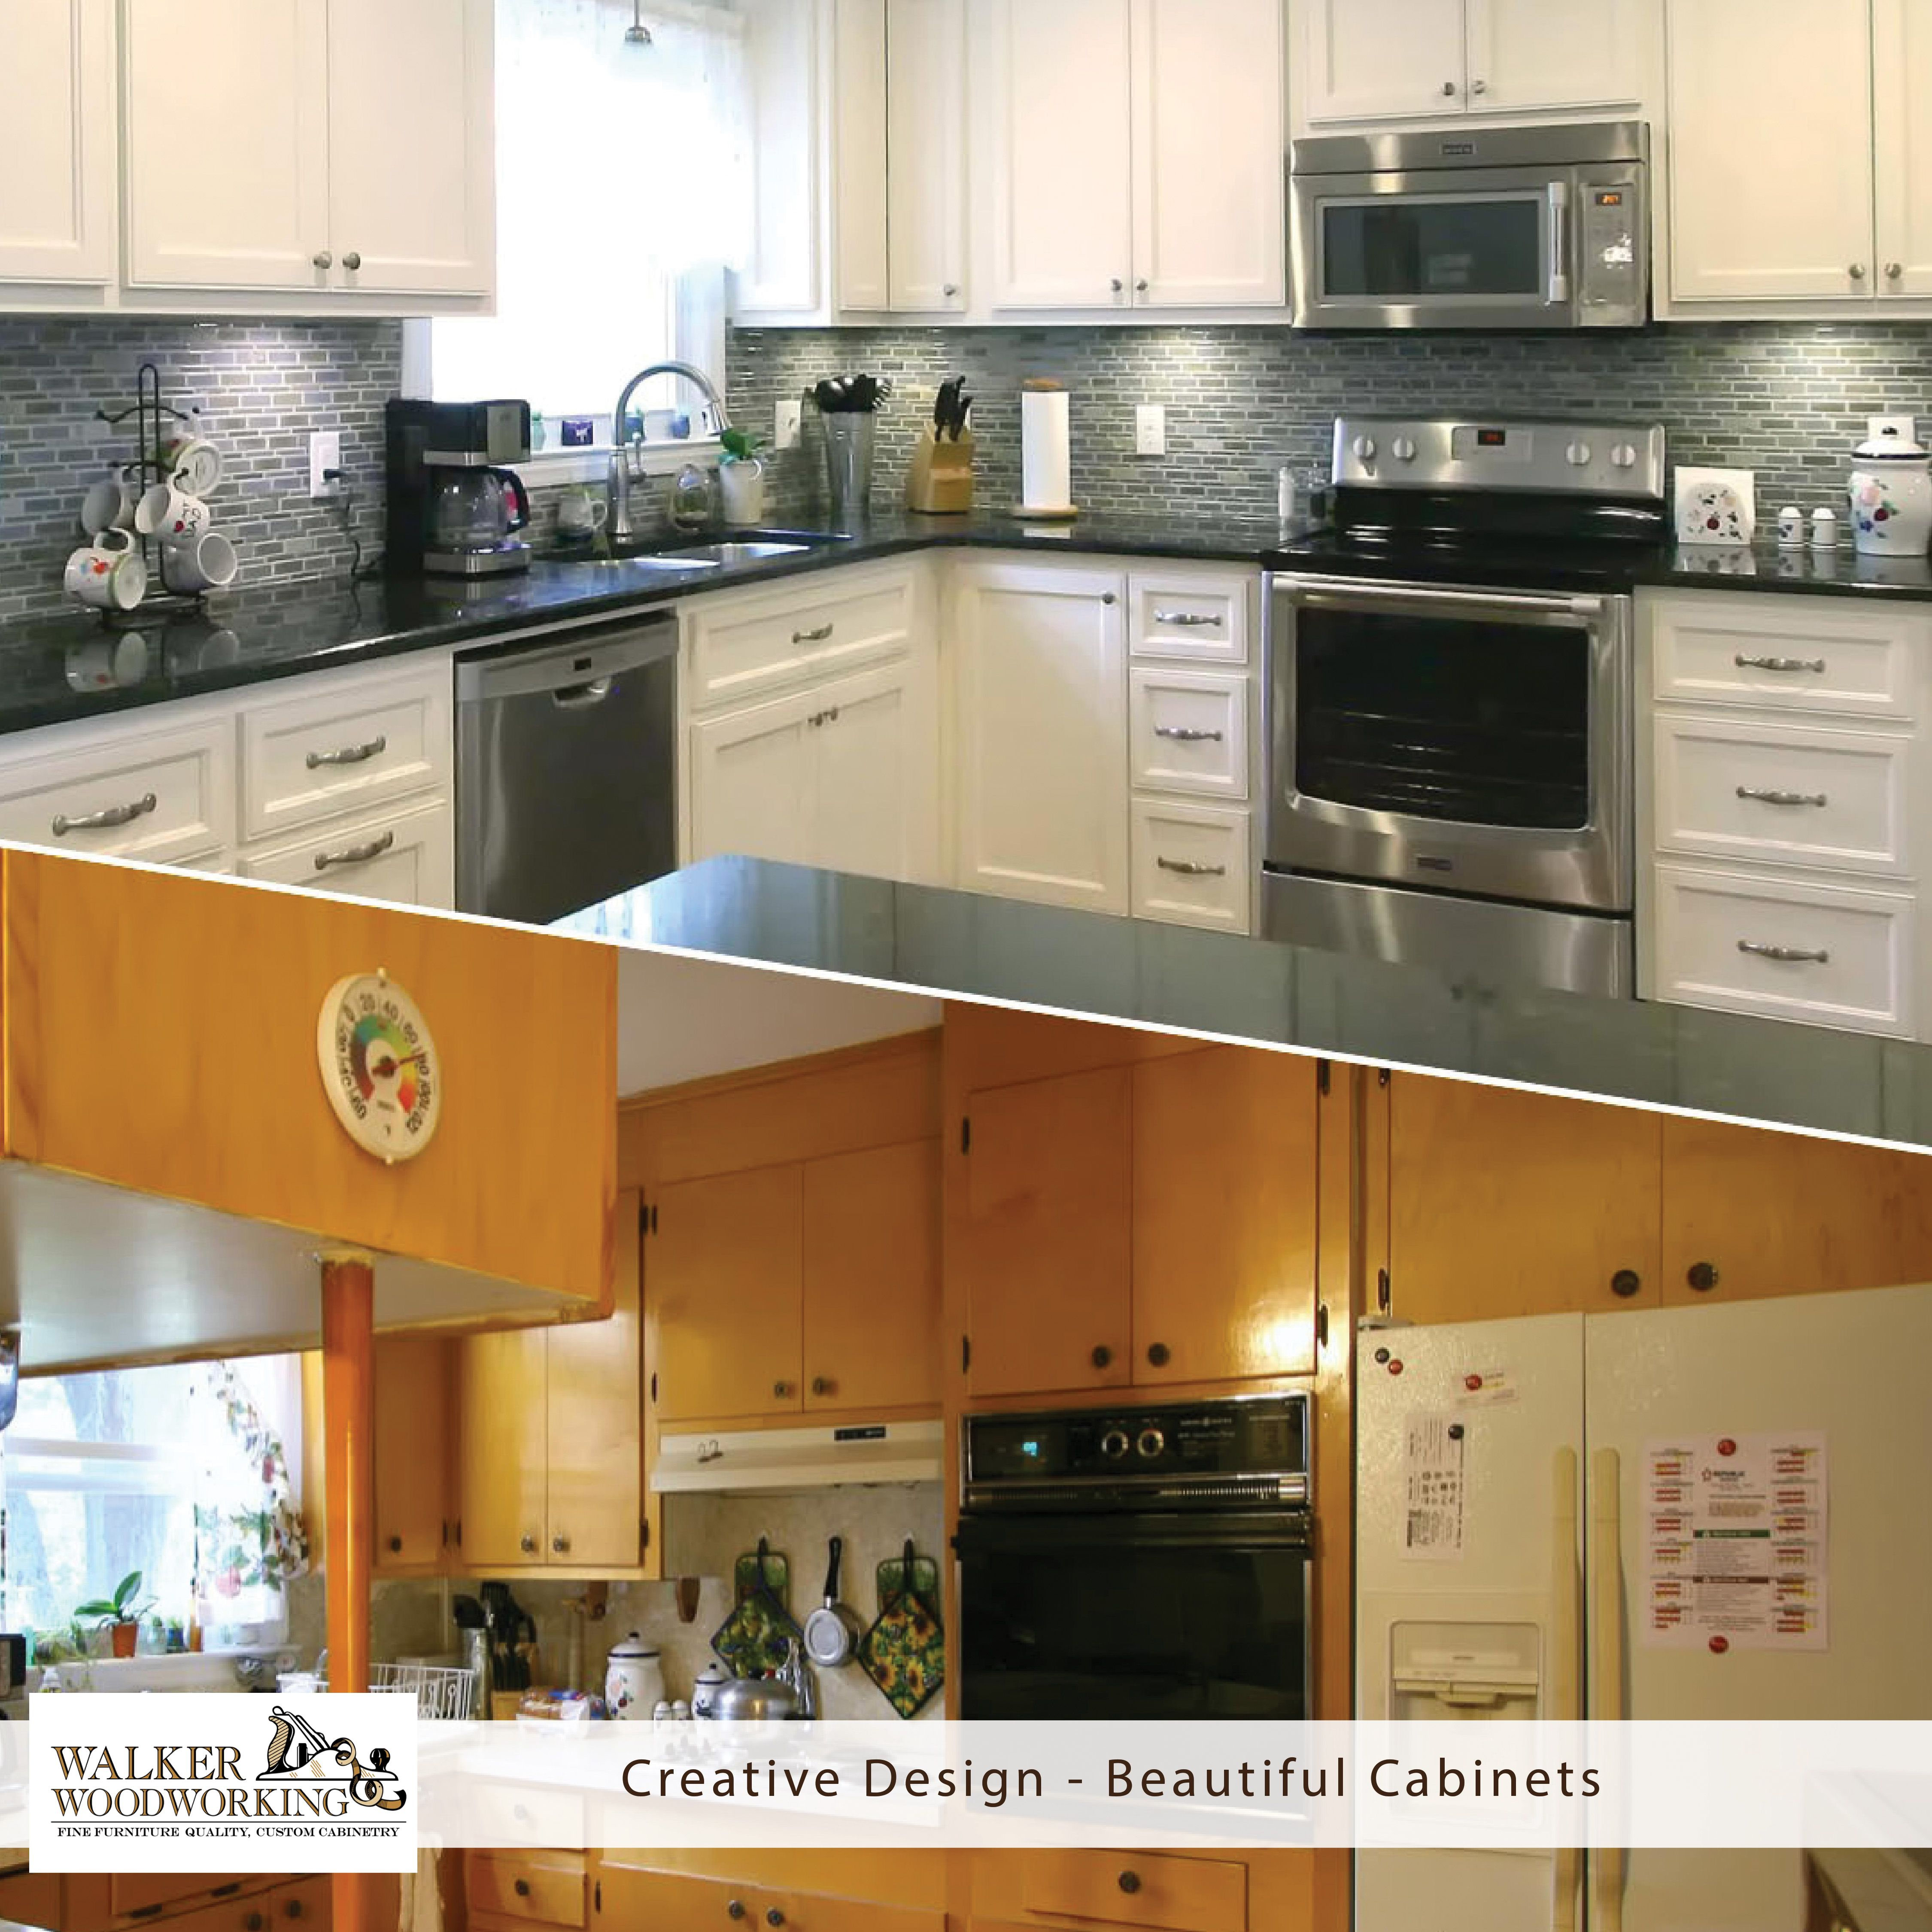 From Outdated To Defined We Bring Together Design Function And Beauty To Make Your Project One Of A Kind Kitchen Remodel Walker Woodworking Kitchen Design